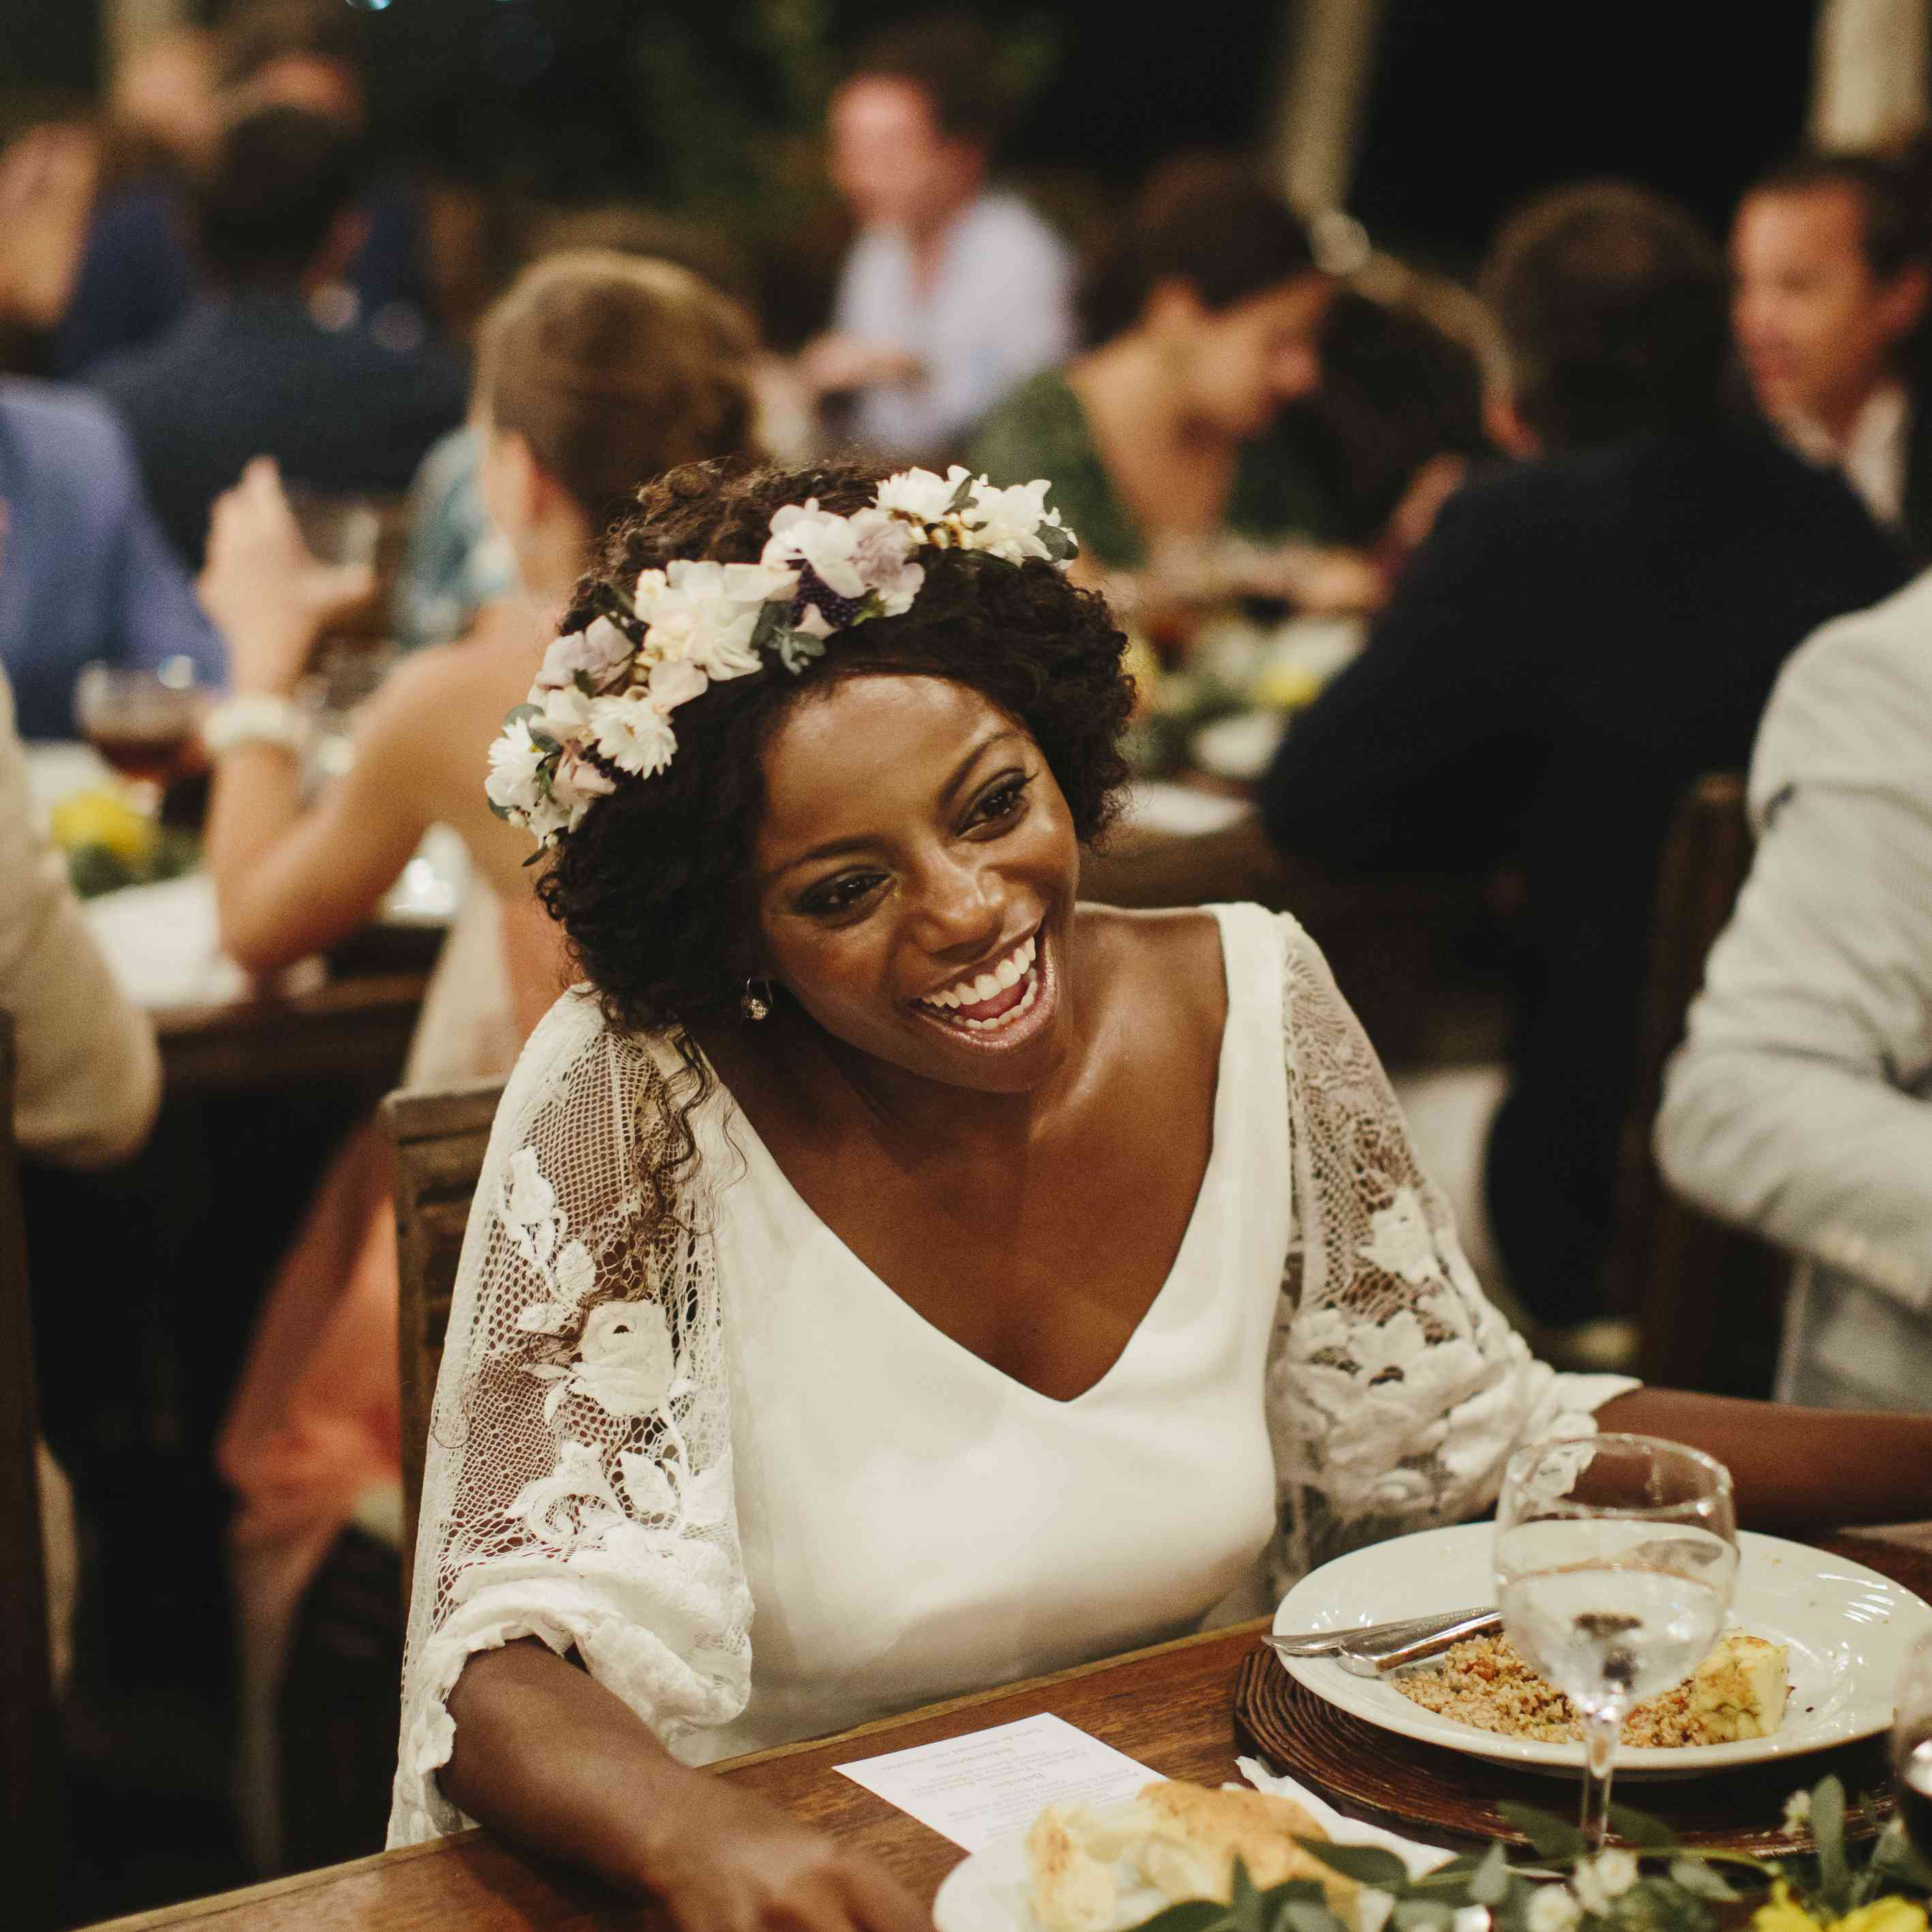 bride smiling glowing at reception dinner